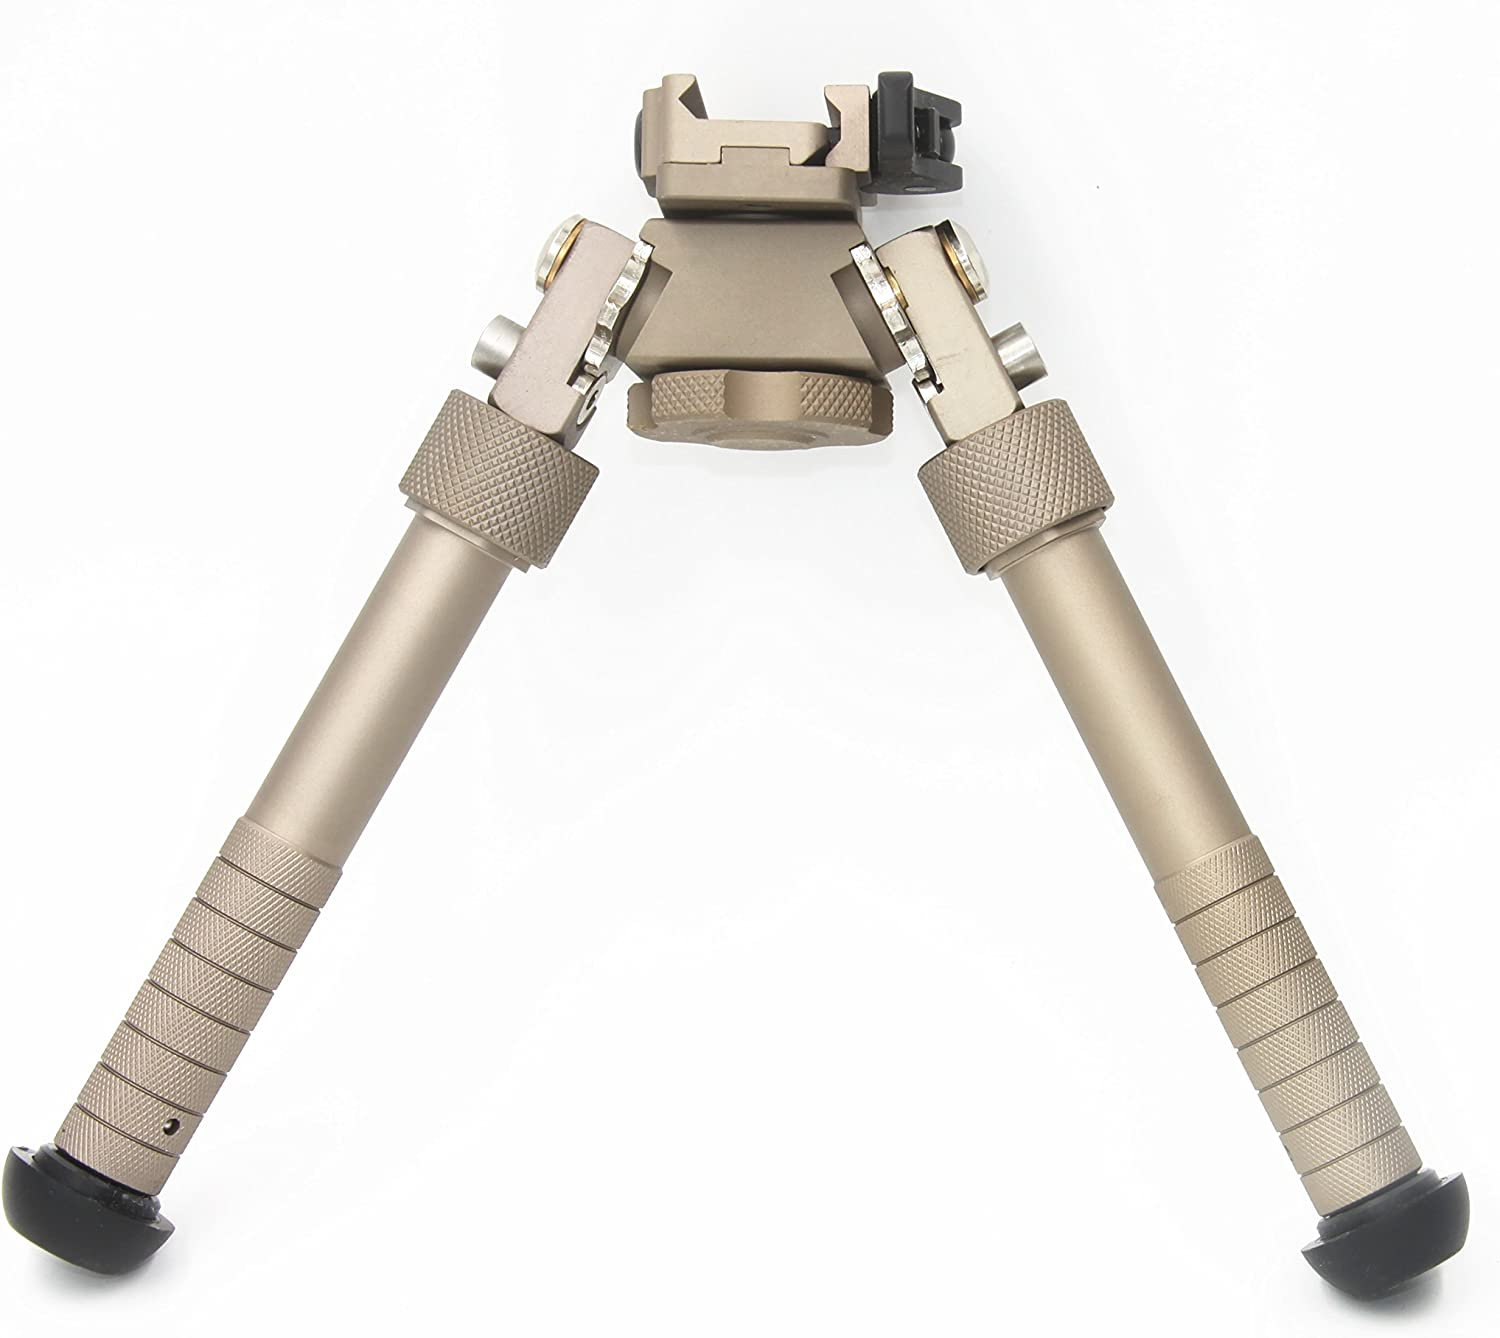 Photo of a JINSE Bipod Picatinny Rail tactical bipod in front of a white background.